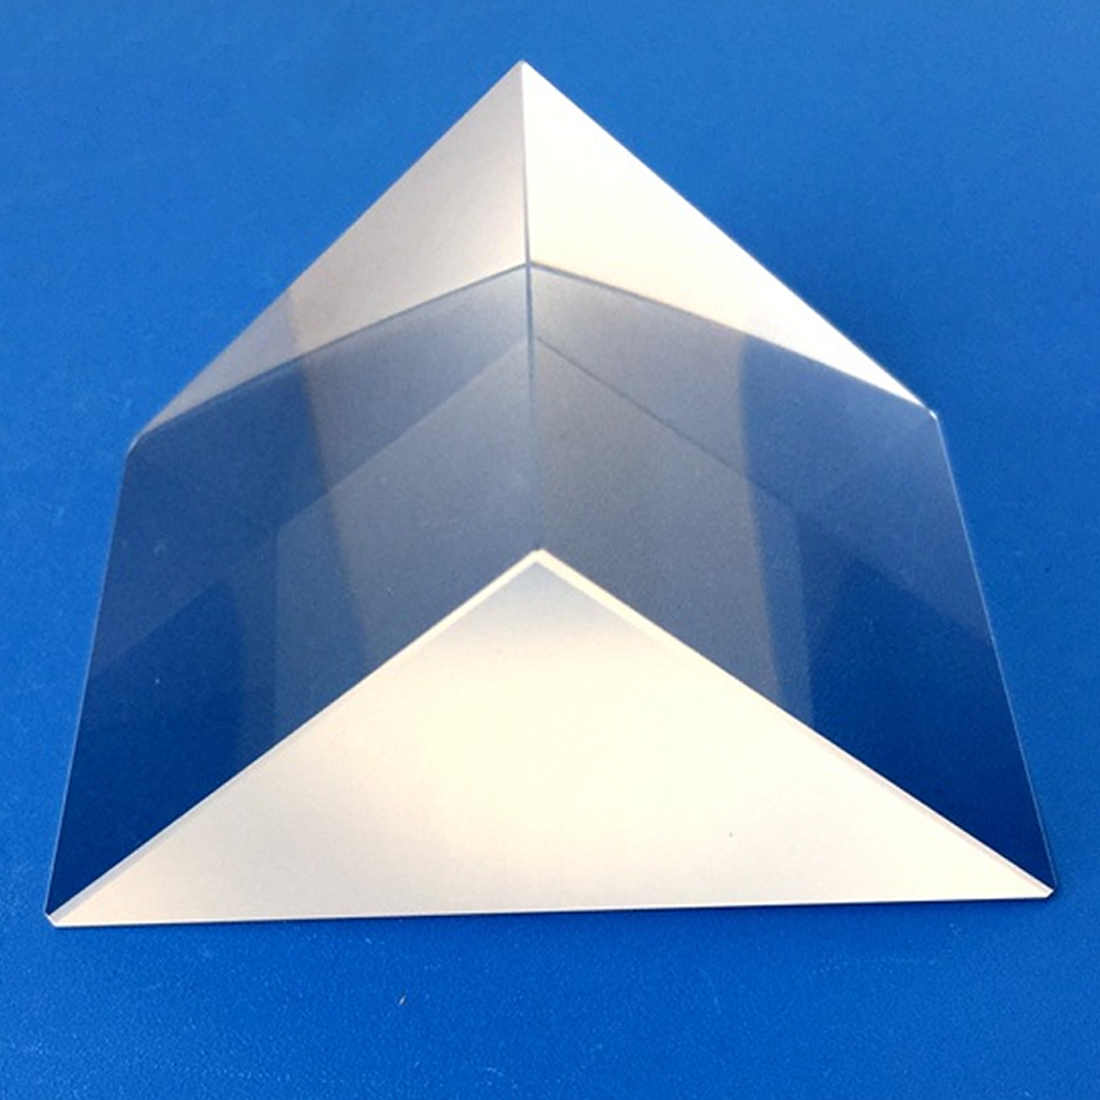 5ecdf92342 ... K9 Optical Glass Right Angle Reflecting Triangular Prism For Teaching  Light Spectrum Total reflection Triangular color ...